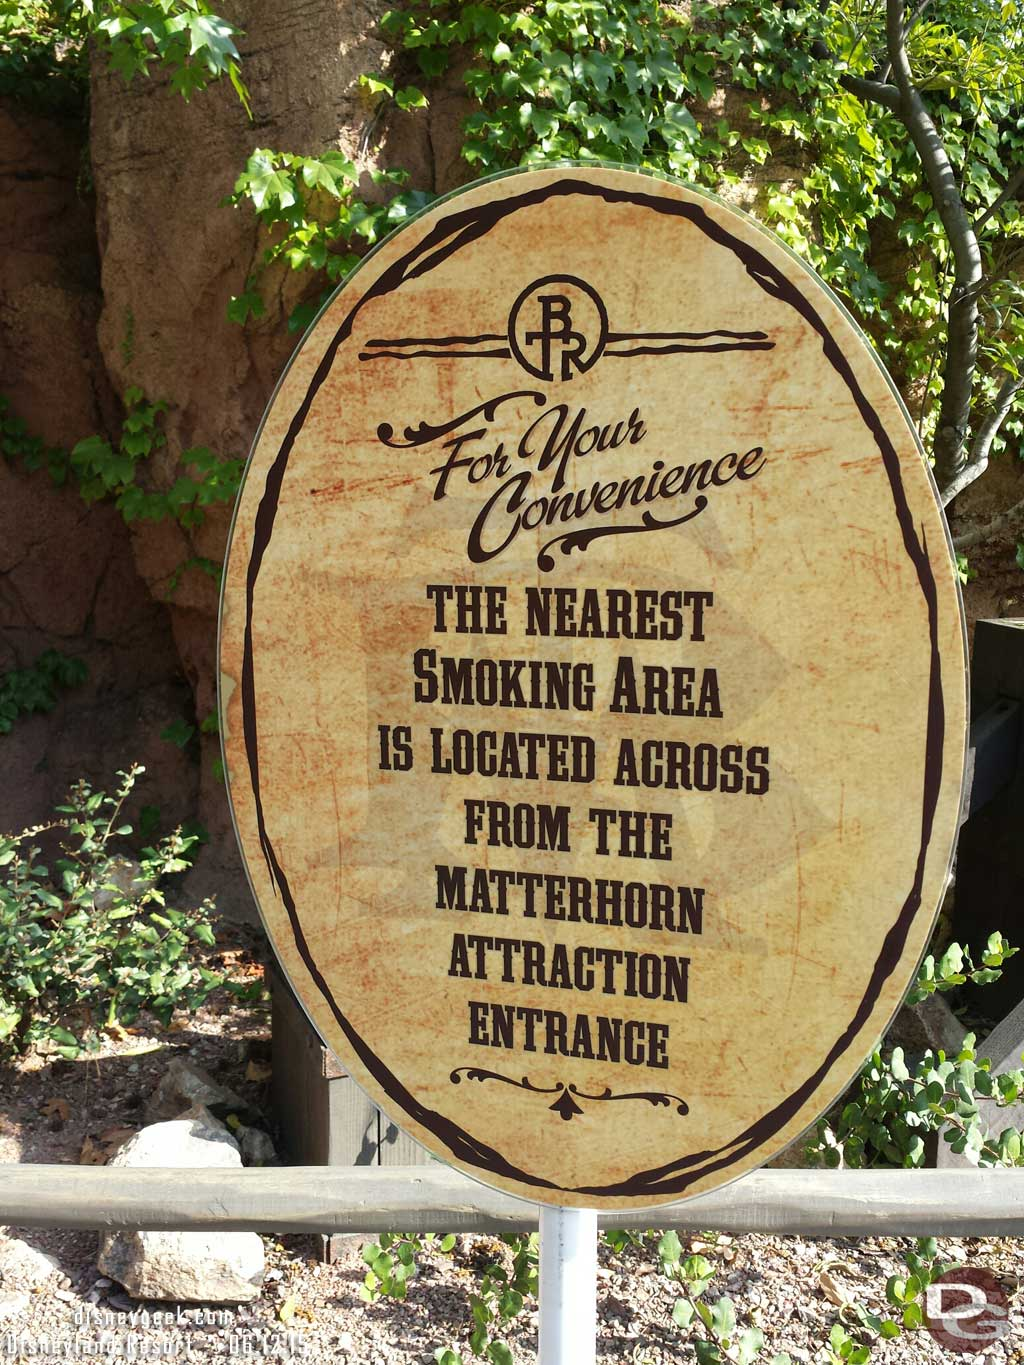 The smoking area on the Big Thunder trail ia closed and they direct you to Fantasyland